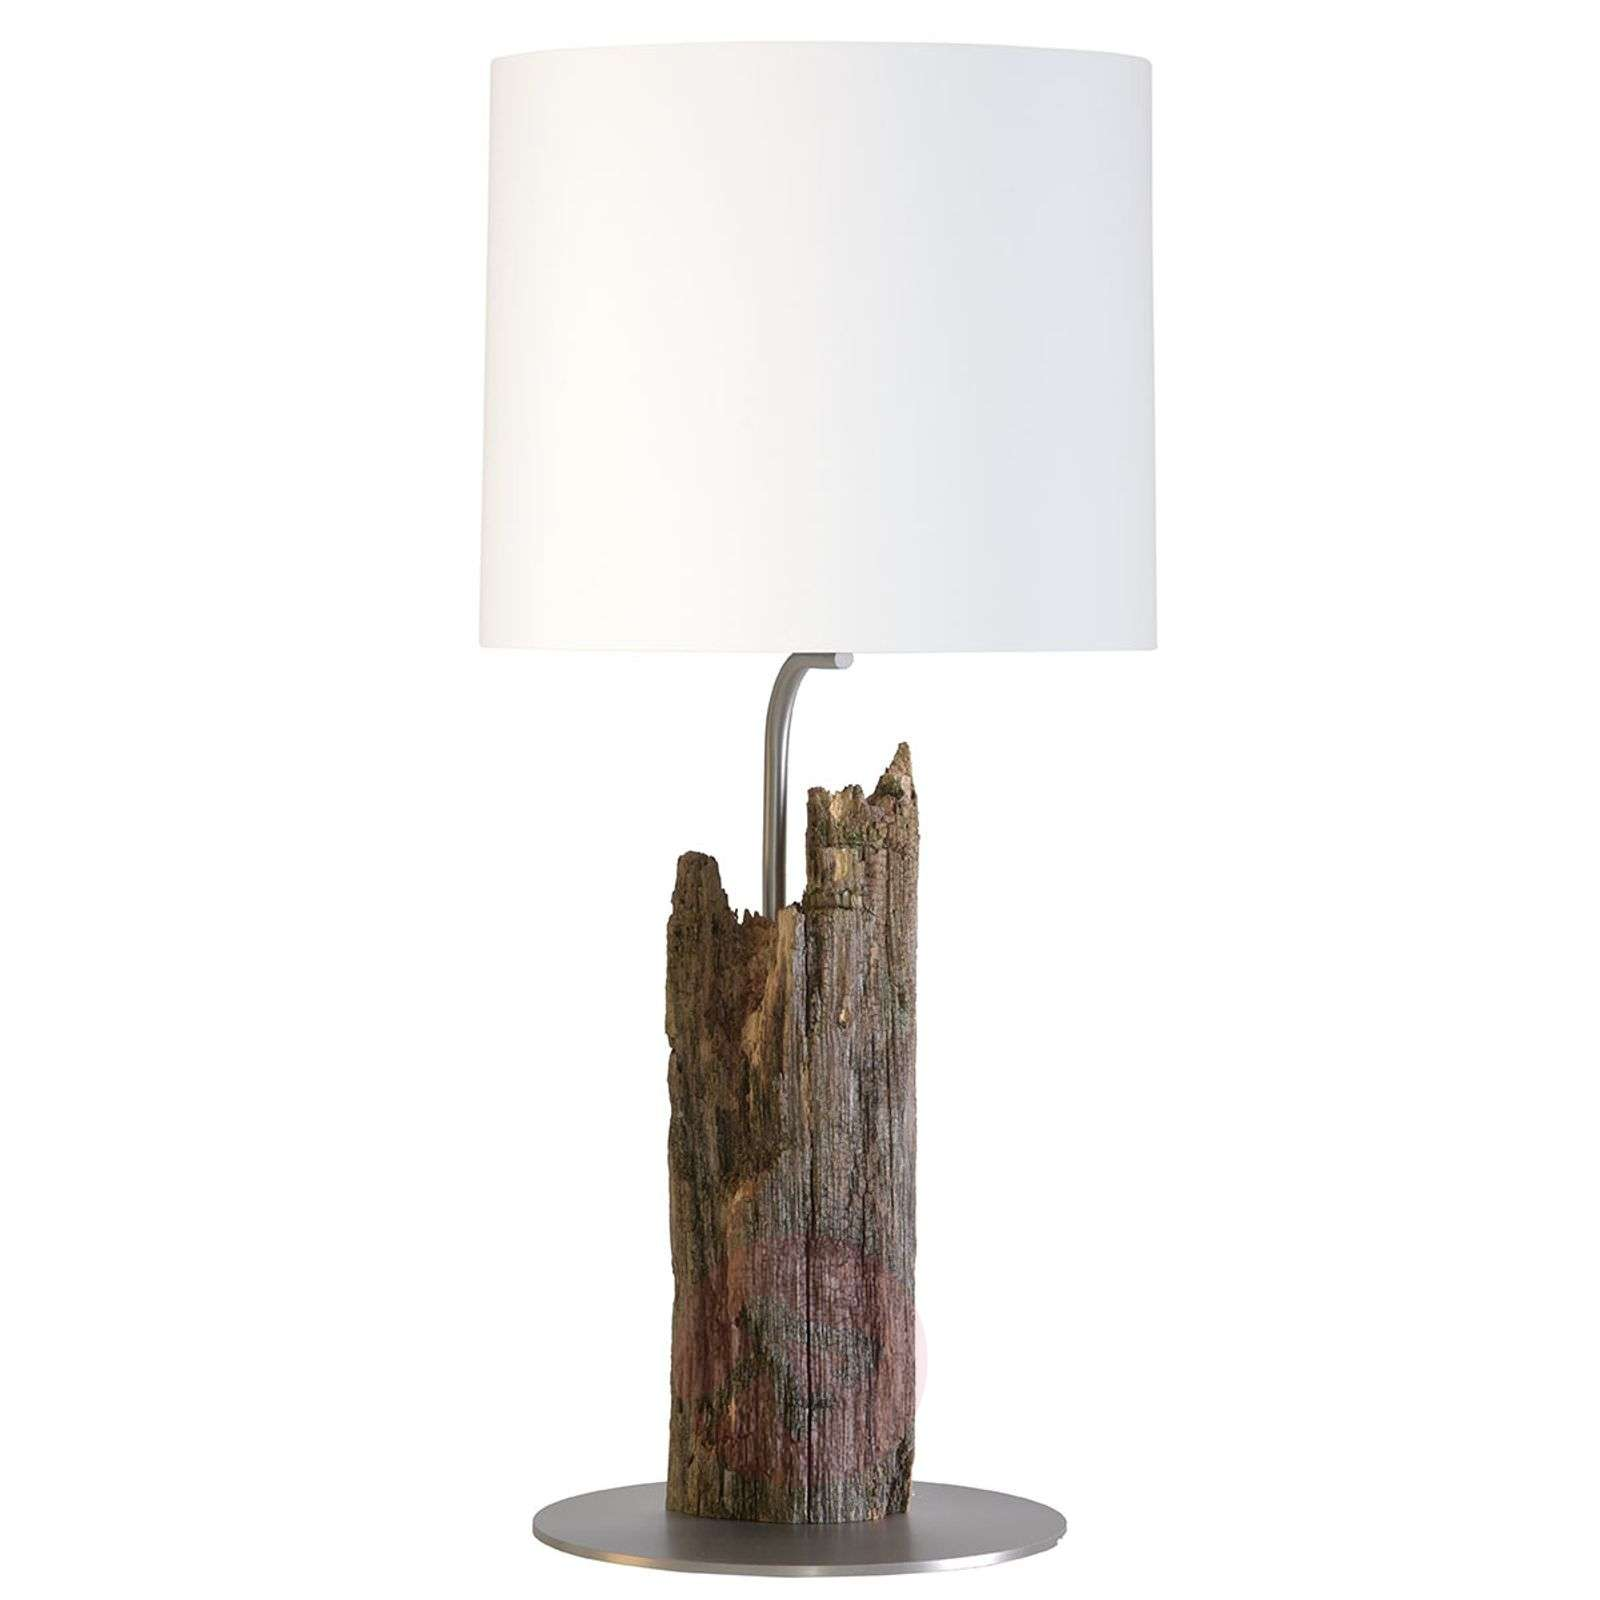 Buffet lamp Alter Kavalier with a fence post base-4543017-03